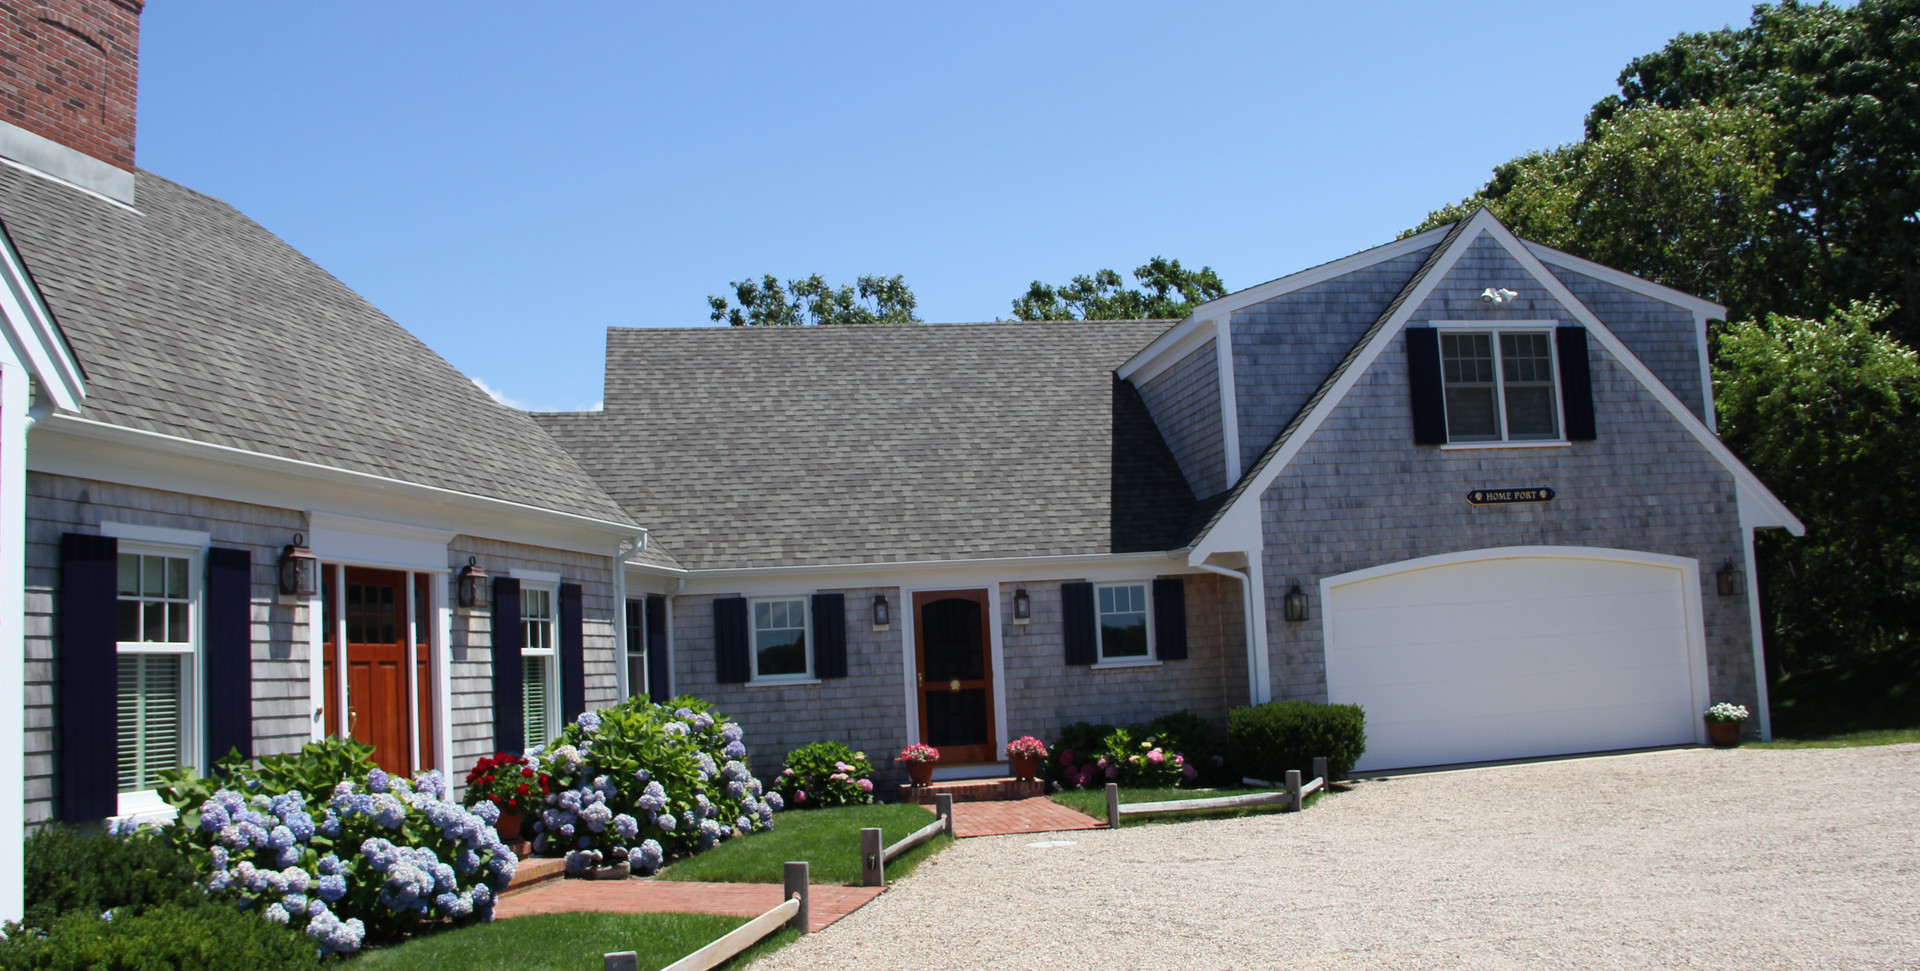 Ryders Cove, North Chatham Cape Cod Home Renovation